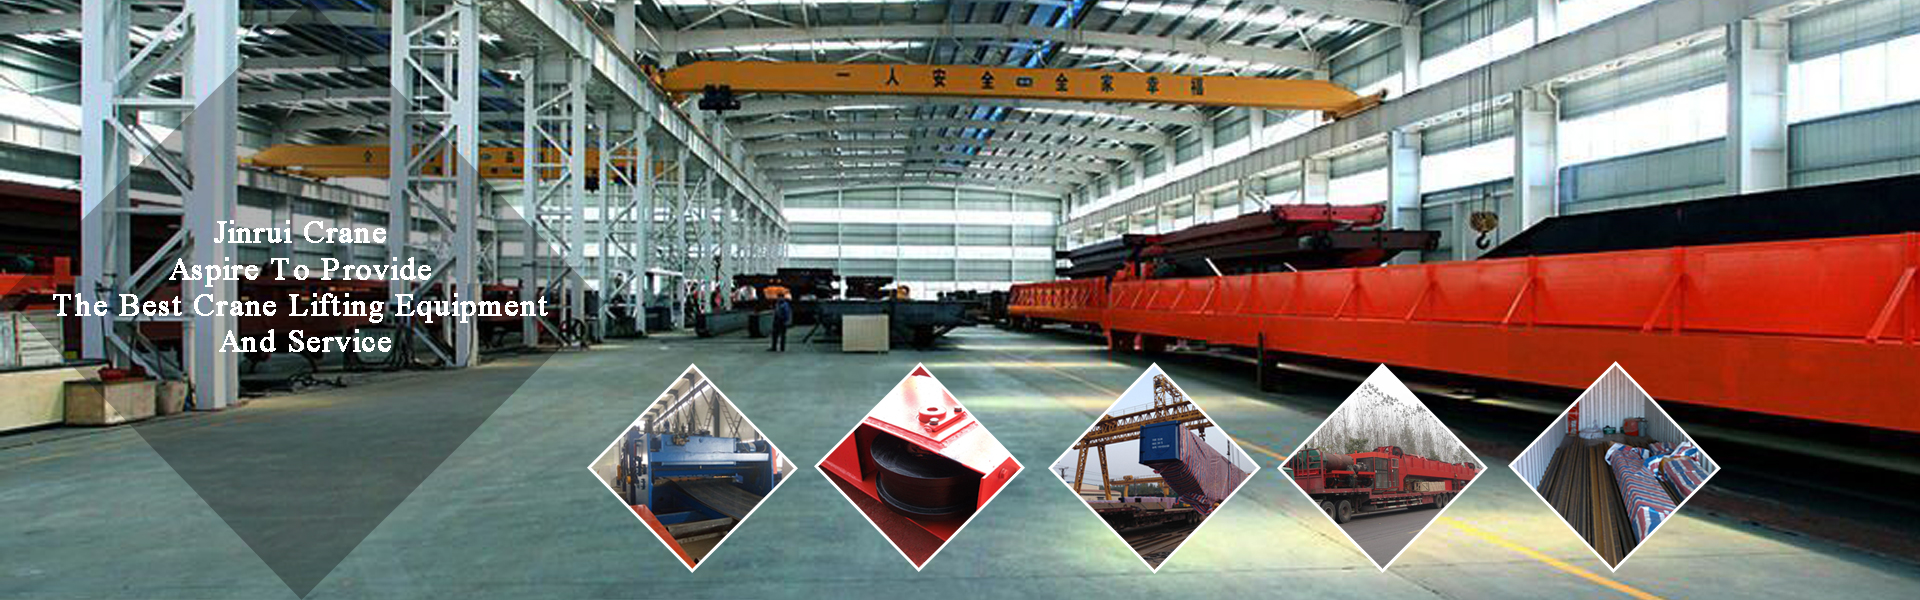 Jinrui Crane Aspire To Provide The Best Crane Lifting Equipment And Service